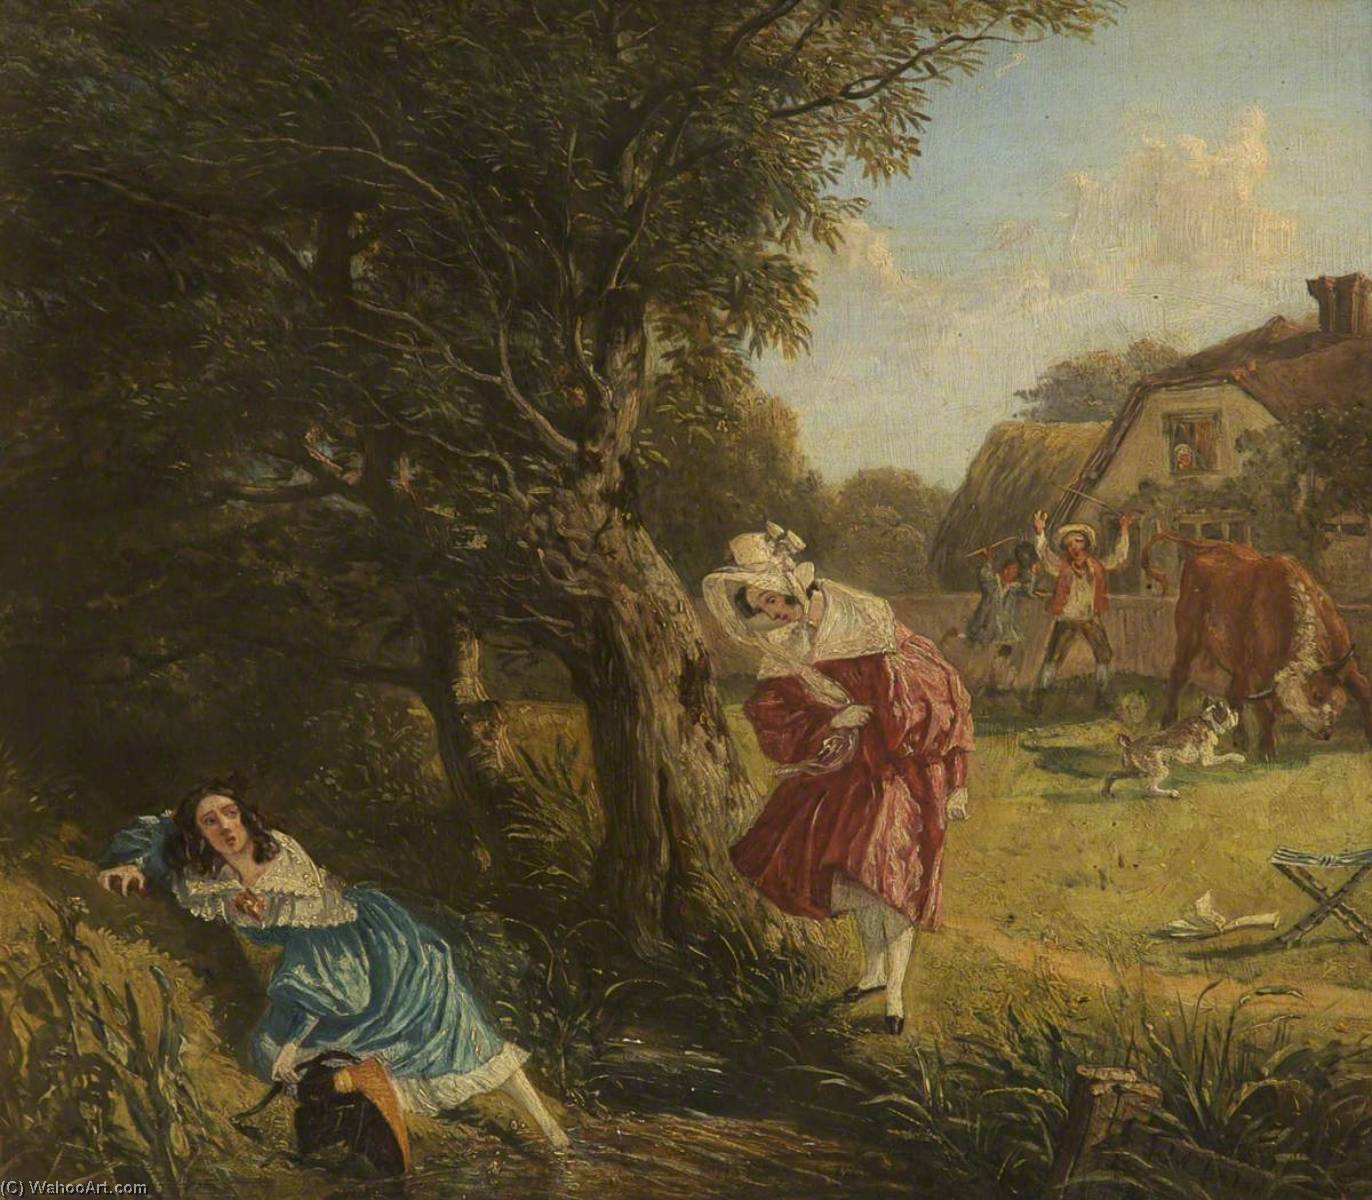 Look before You Leap, Oil by John James Chalon (1778-1854)